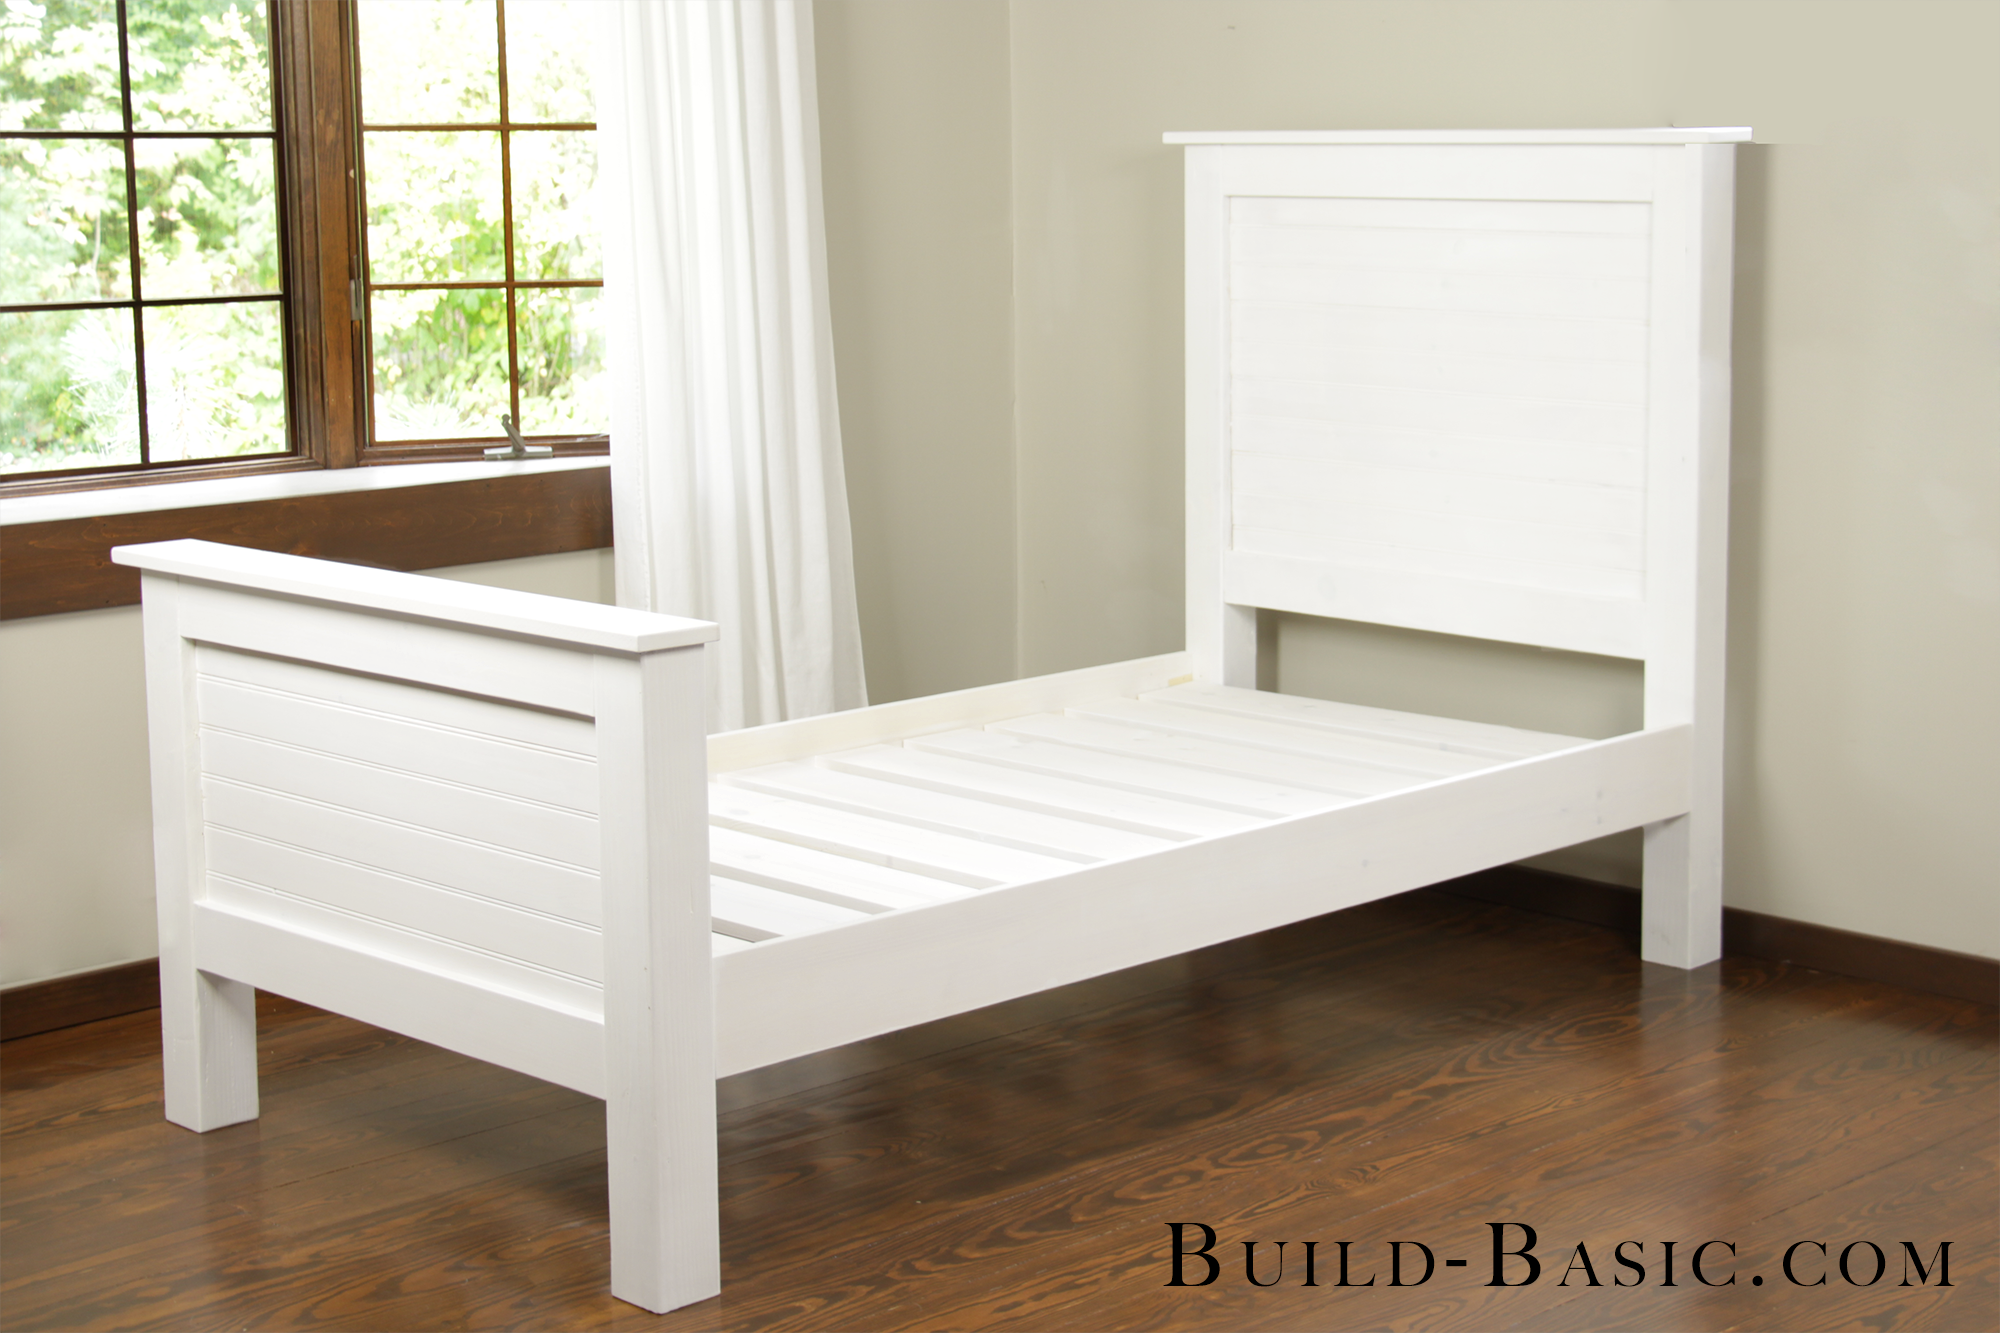 Diy kids bed frame diy do it your self for Twin bed frame